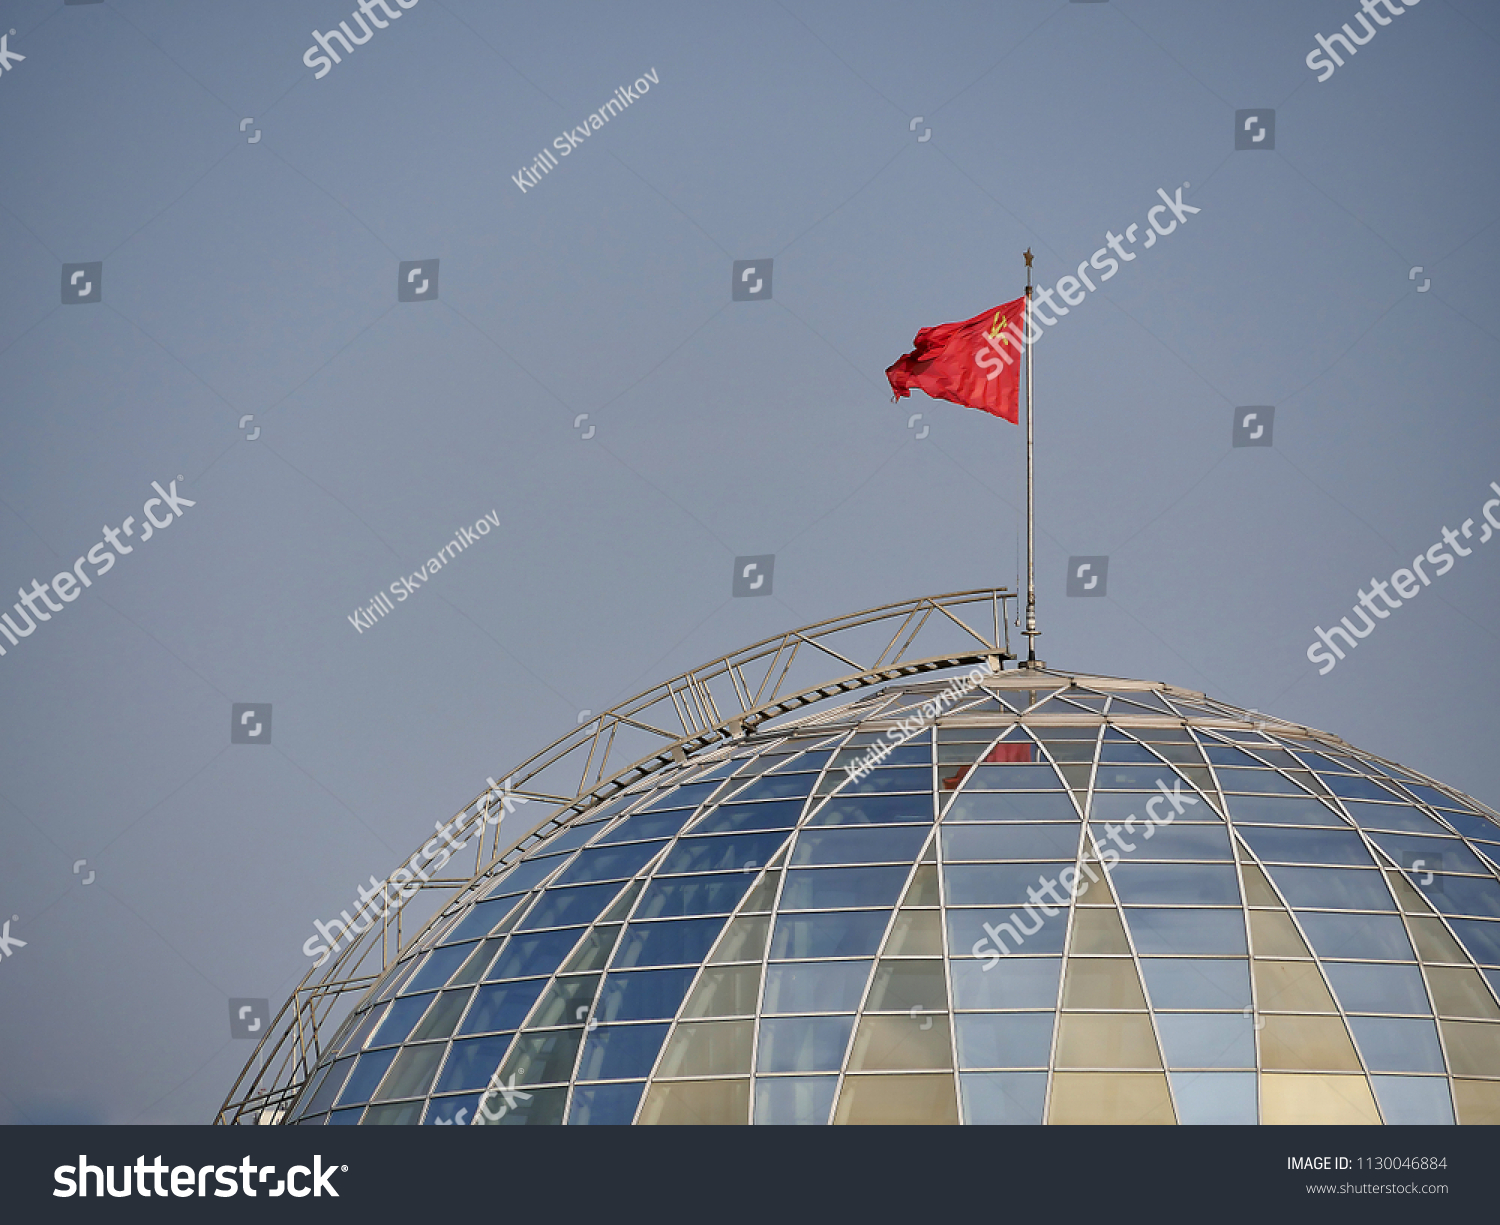 Red Flag Soviet Union On Glass Stock Photo (Edit Now) 1130046884